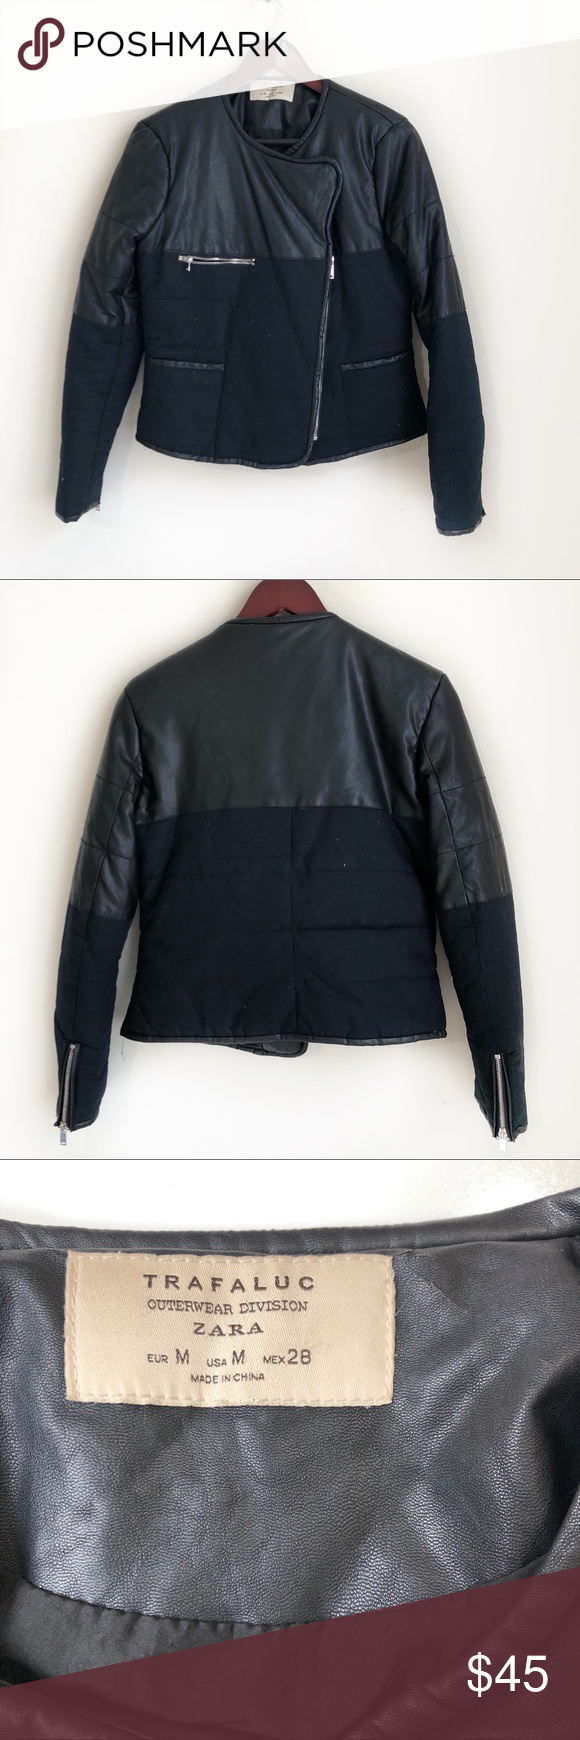 Zara Trafaluc Outerwear Division Jacket Excellent Condition 100 Polyester Faux Leather Zara Jackets Coats Jackets Zara Zara Jackets [ 1740 x 580 Pixel ]